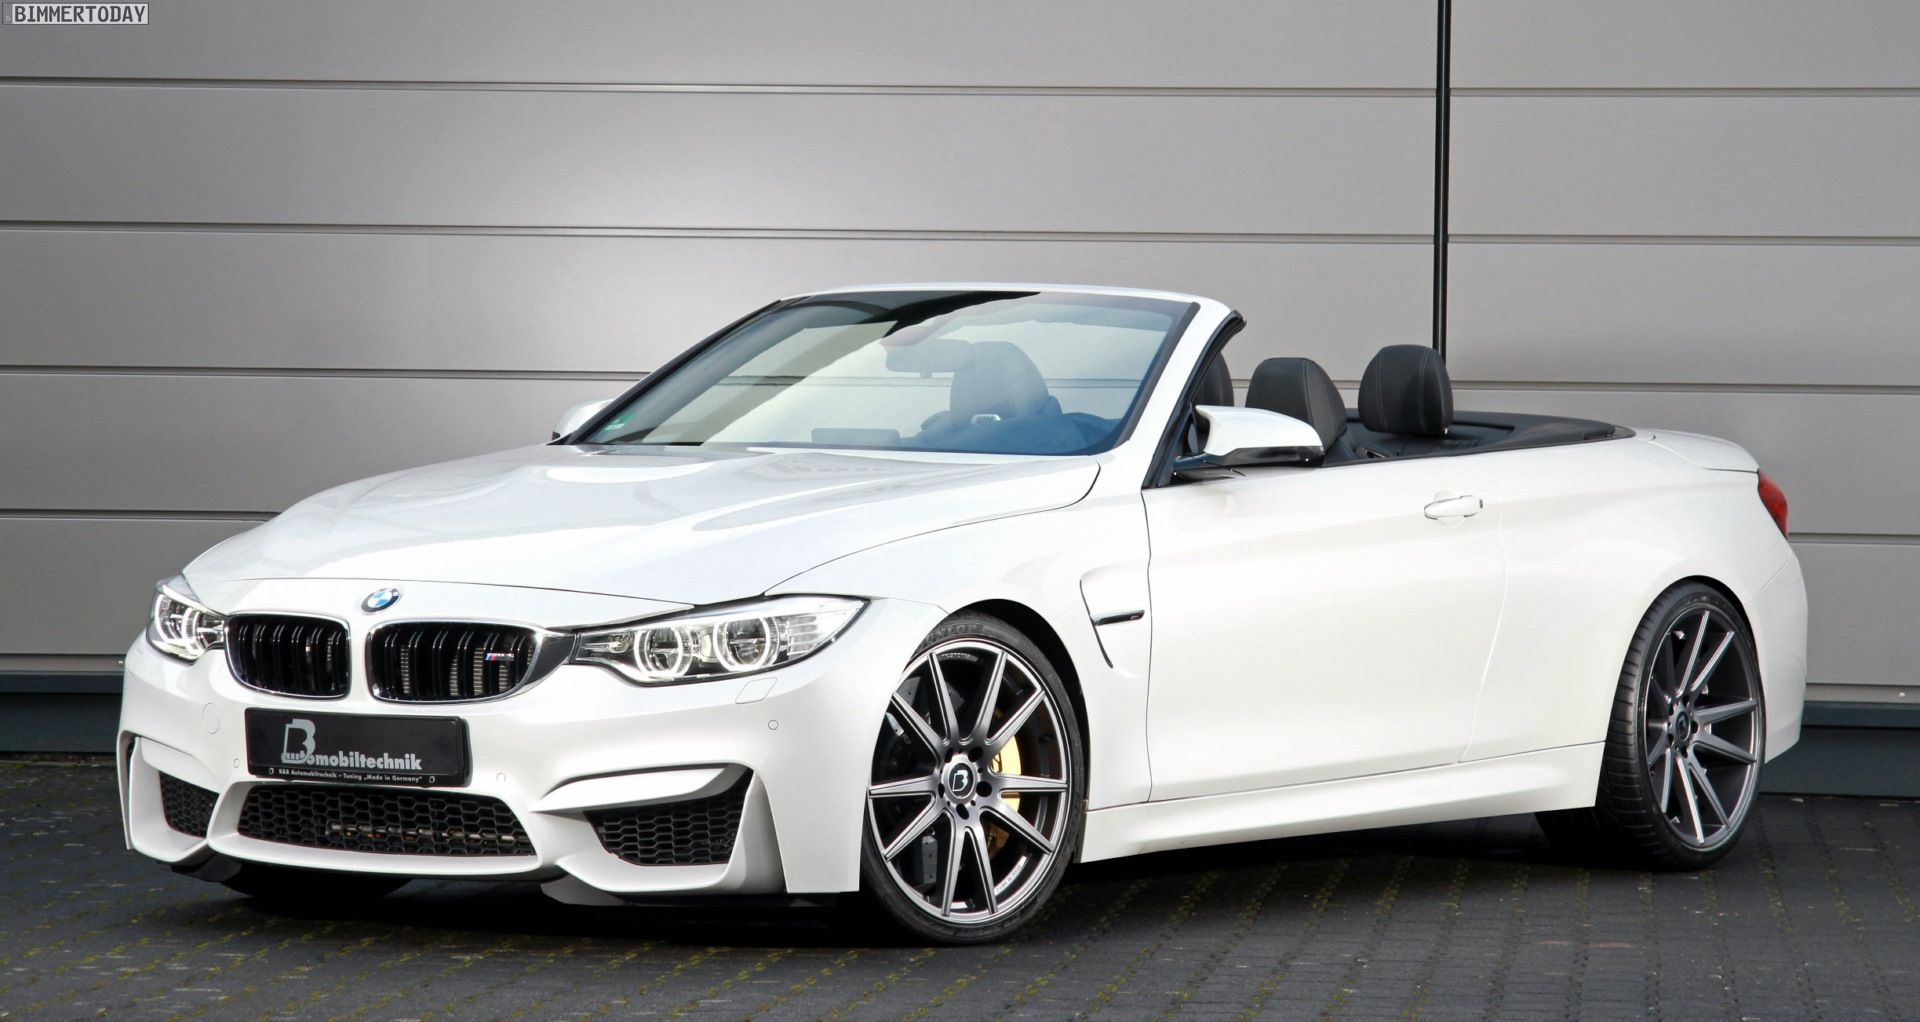 Bmw F83 M4 Convertible White Angel Bmw M4 Bmw Bmw Convertible